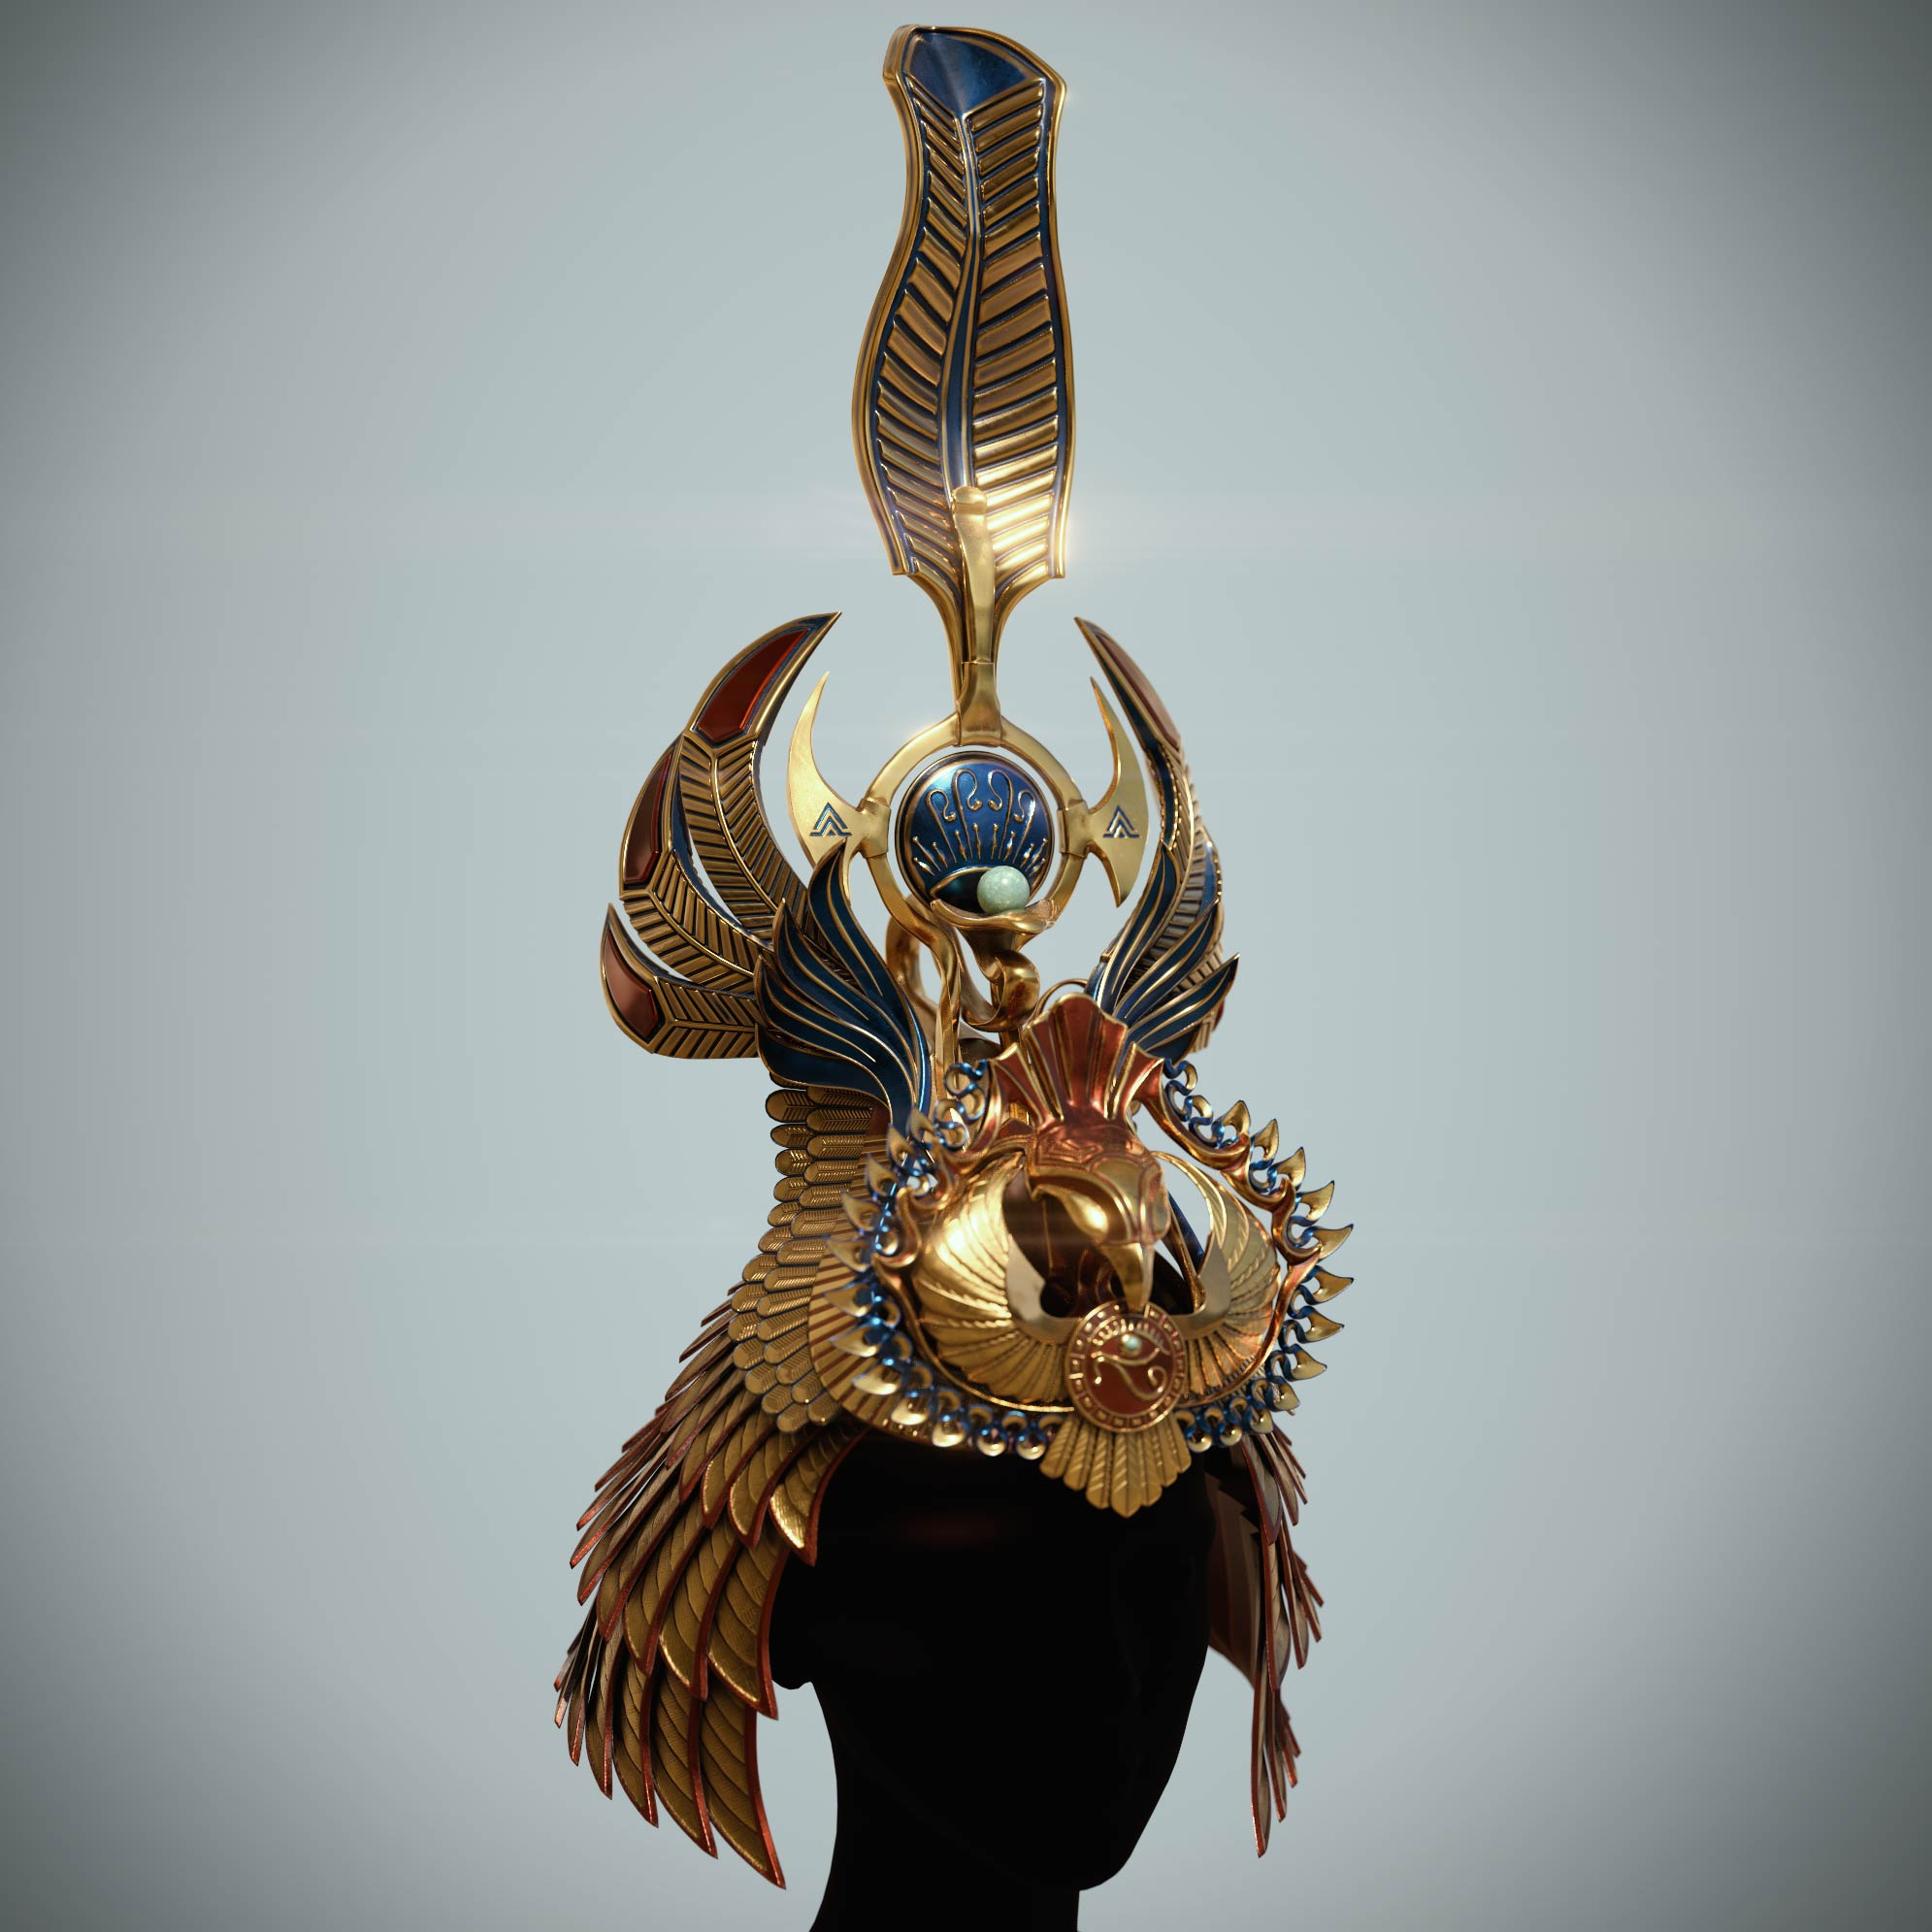 cleopatras_crown_substance_painter_texturing Egyptian queen crown